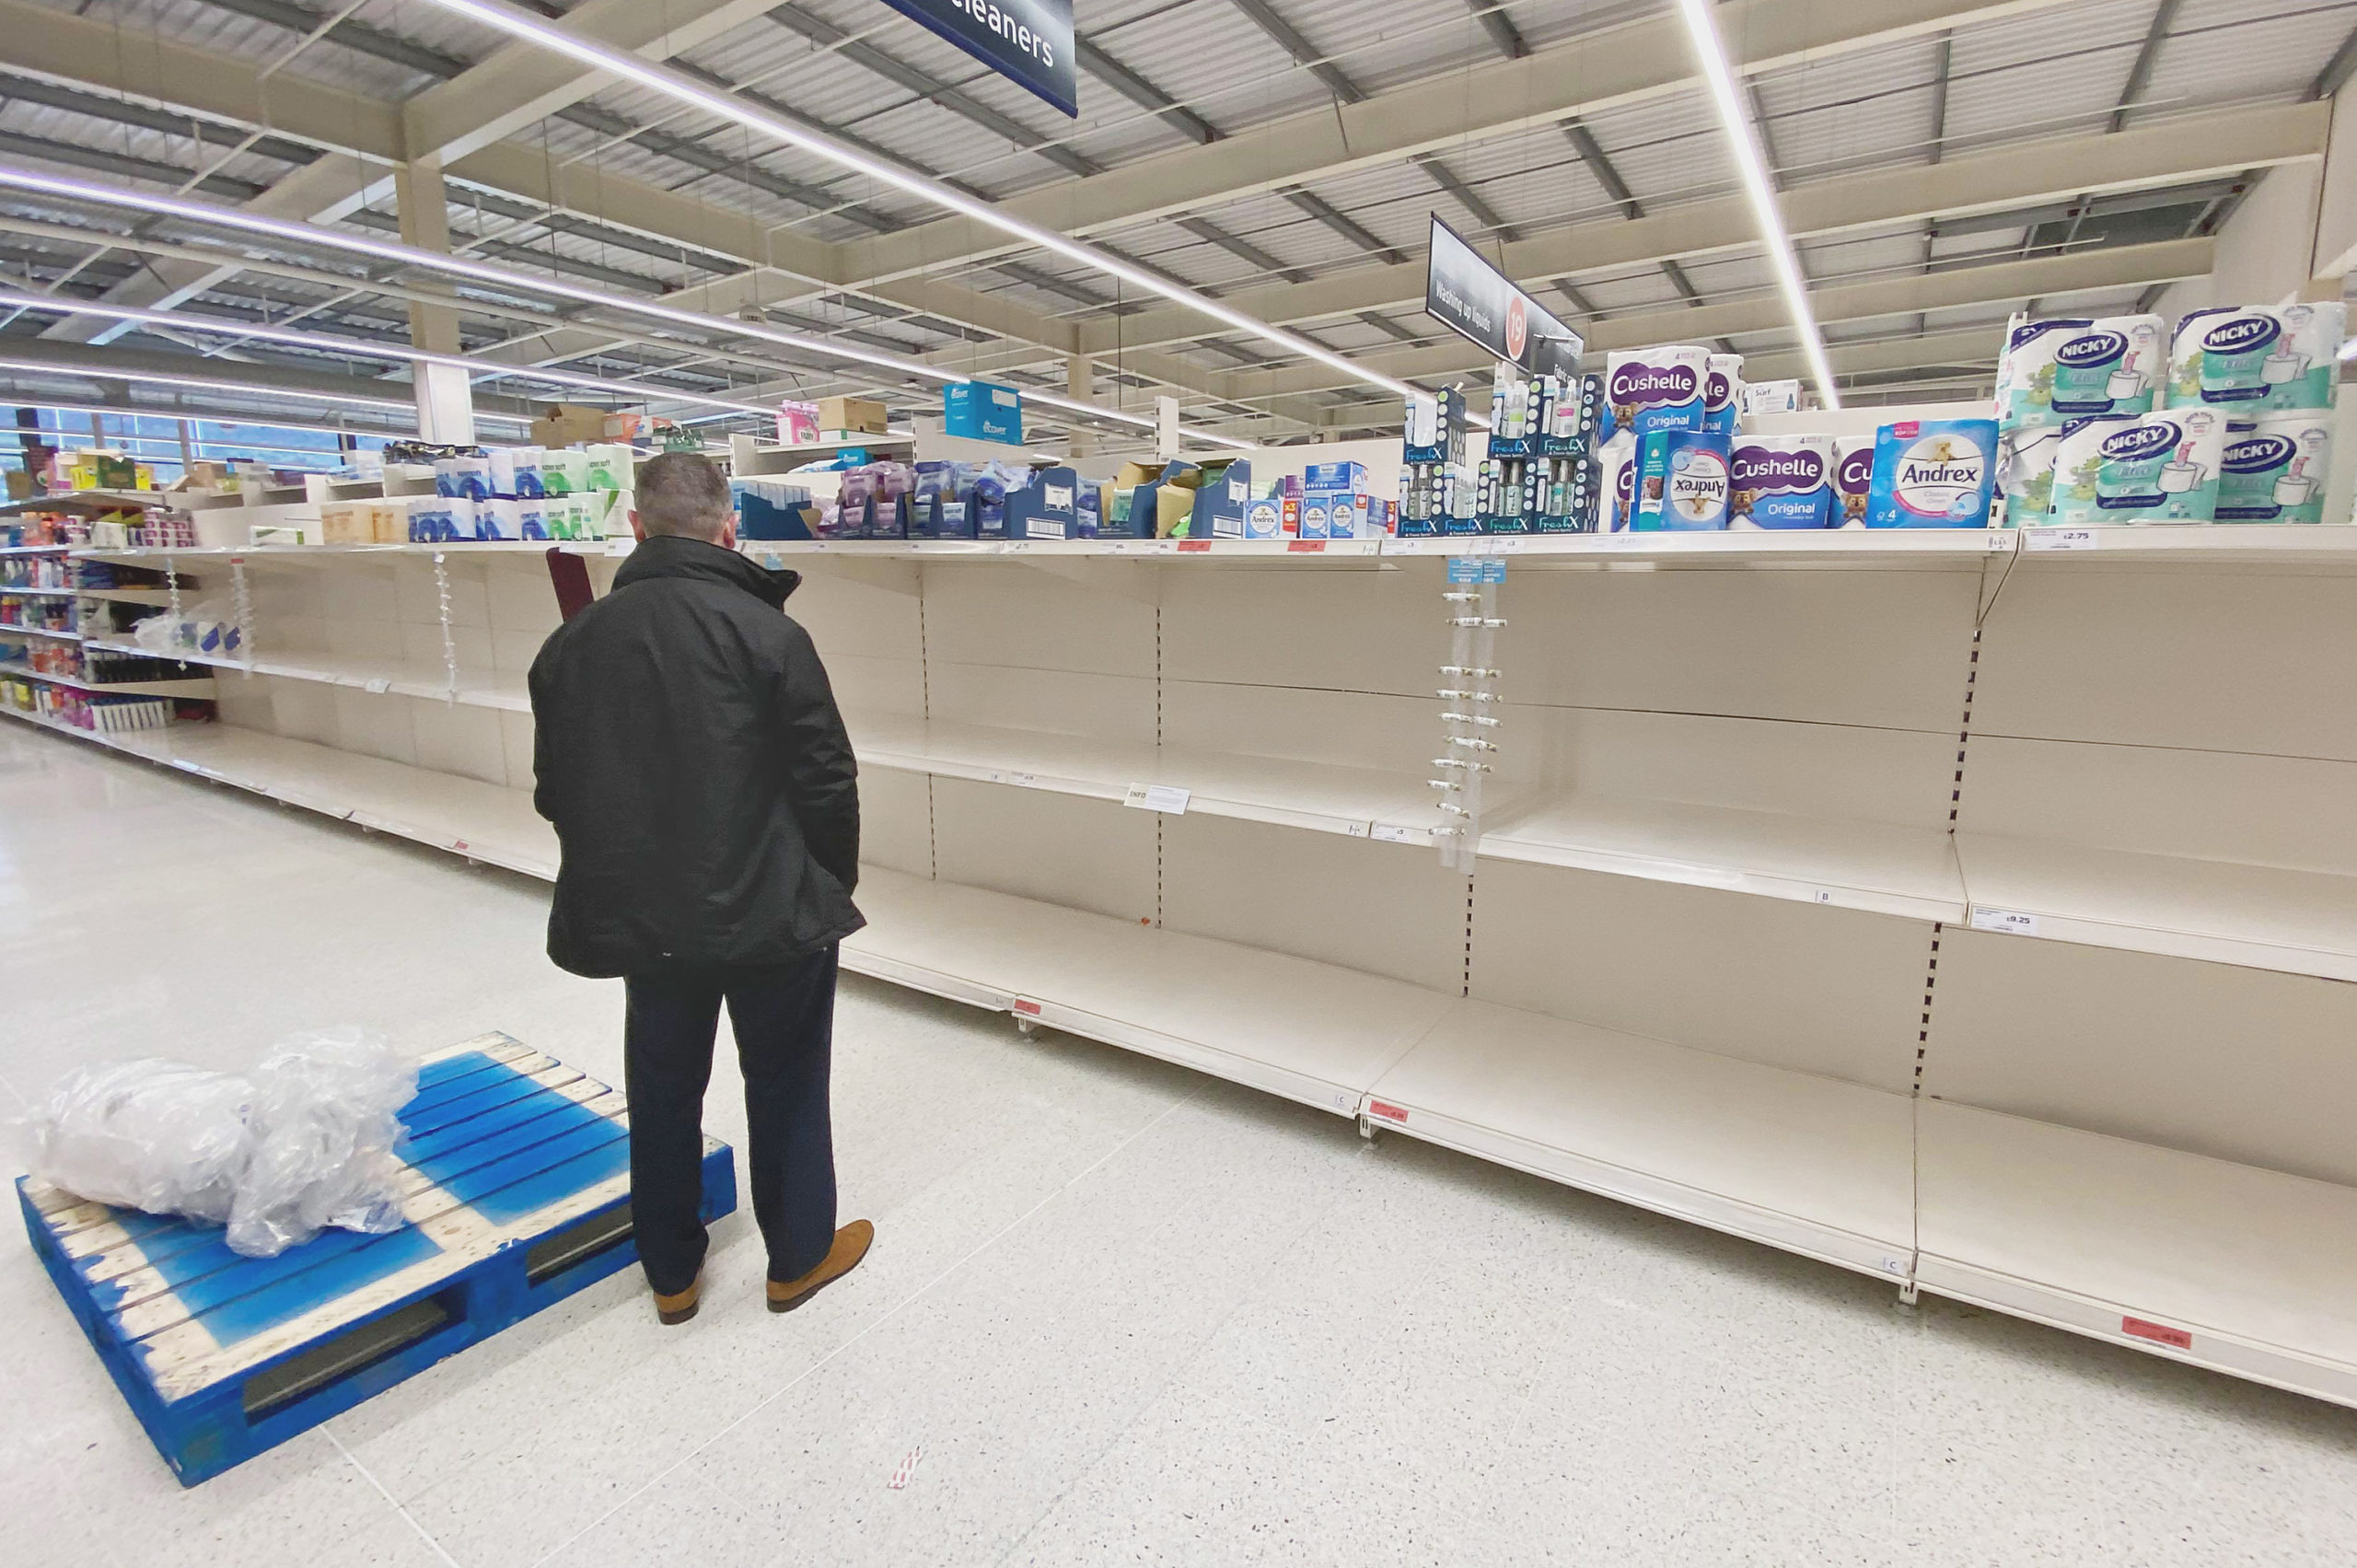 RESTOCK: An out-of-luck shopper stares at the empty shelves in Sainsbury\'s in the Kennedy Centre